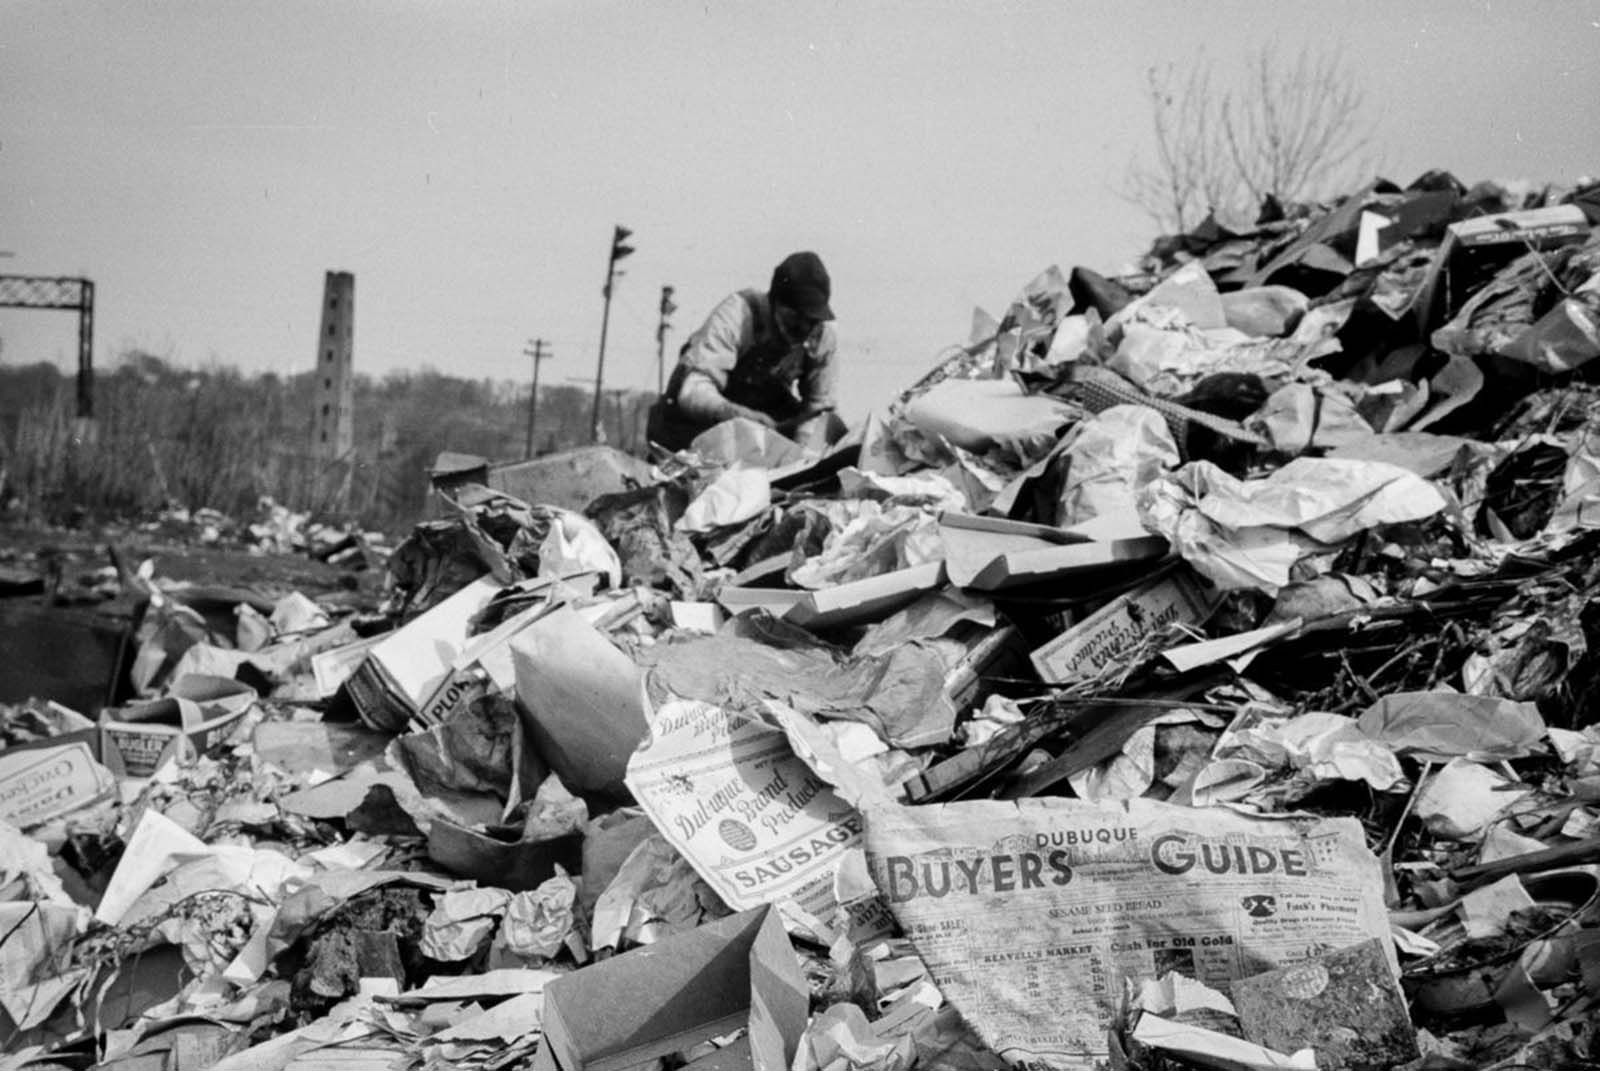 A man scavenges in the Dubuque city dump.